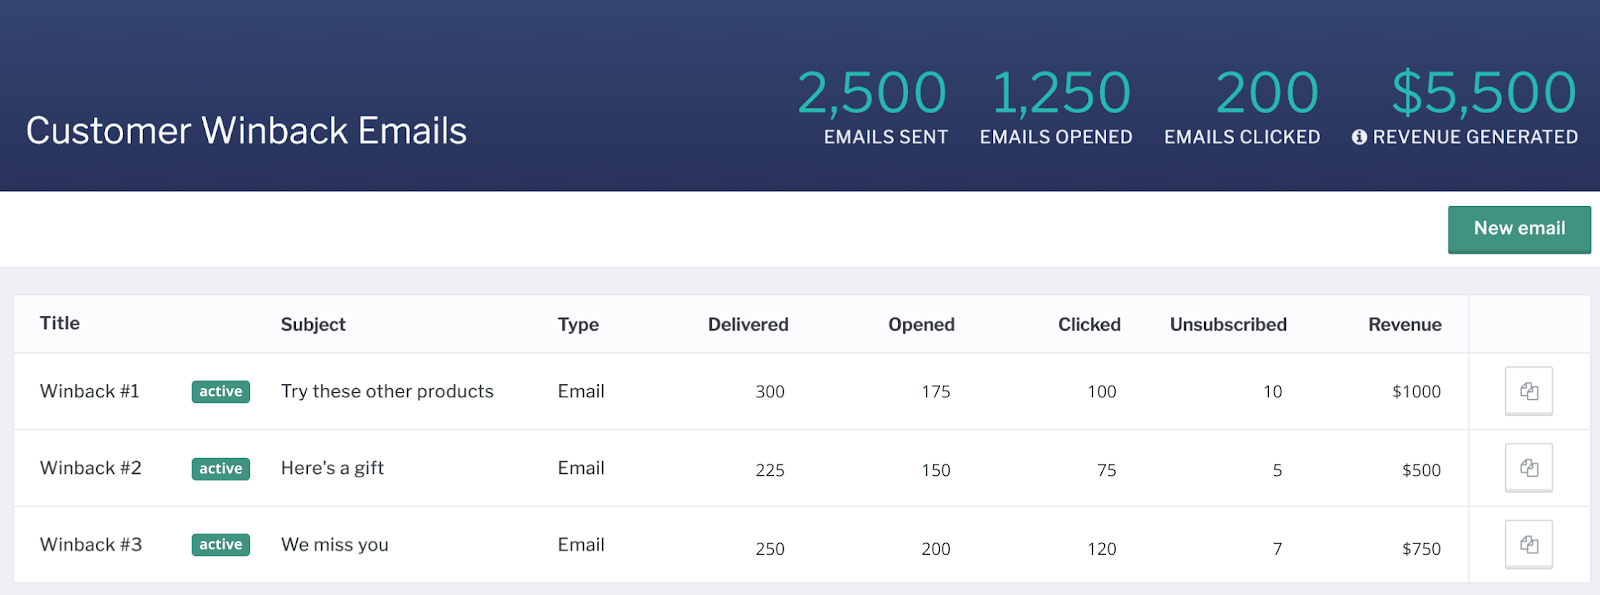 Privy-customer-winback-emails-dashboard-example